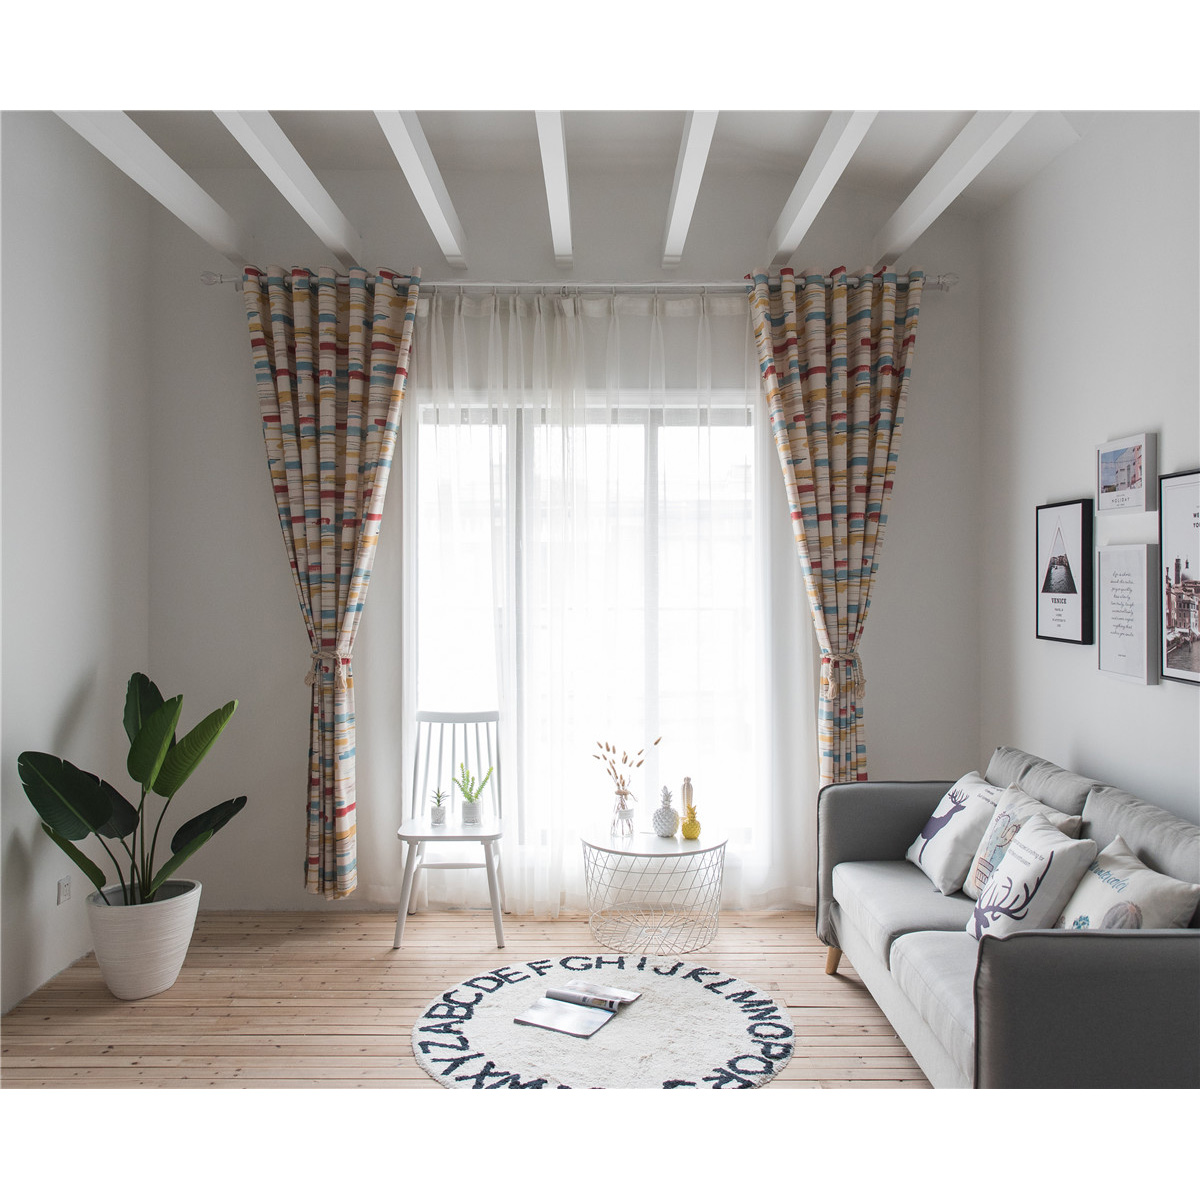 100x280CM Cotton and Linen Flower Embroidery Simple Screen Window Curtain Blackout Noise-Free Shading Curtains